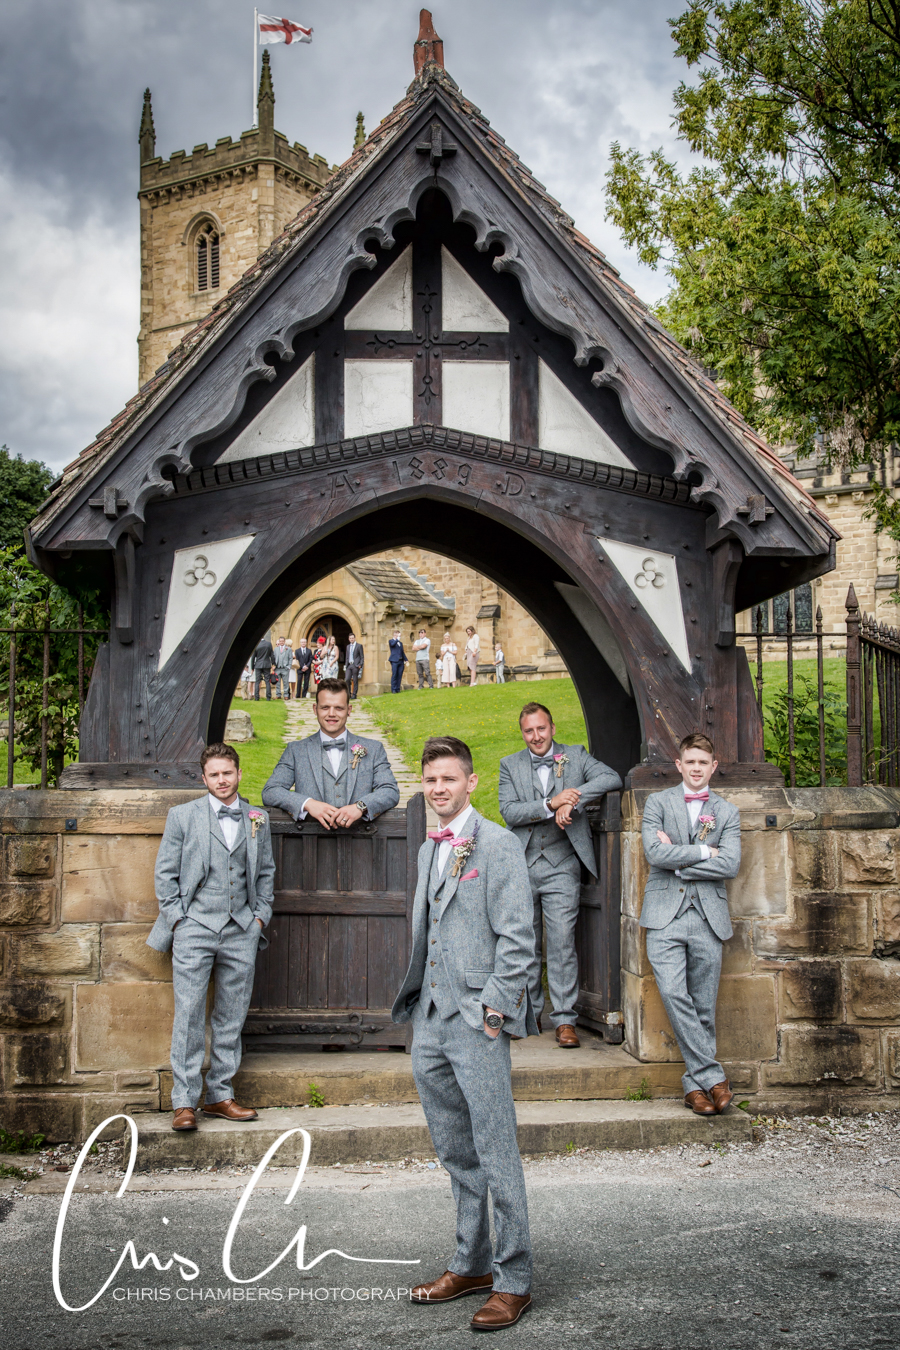 Yorkshire wedding photography in Wakefield, Walton Hall wedding photographer, Waterton park wedding photography, Award winning wedding photography